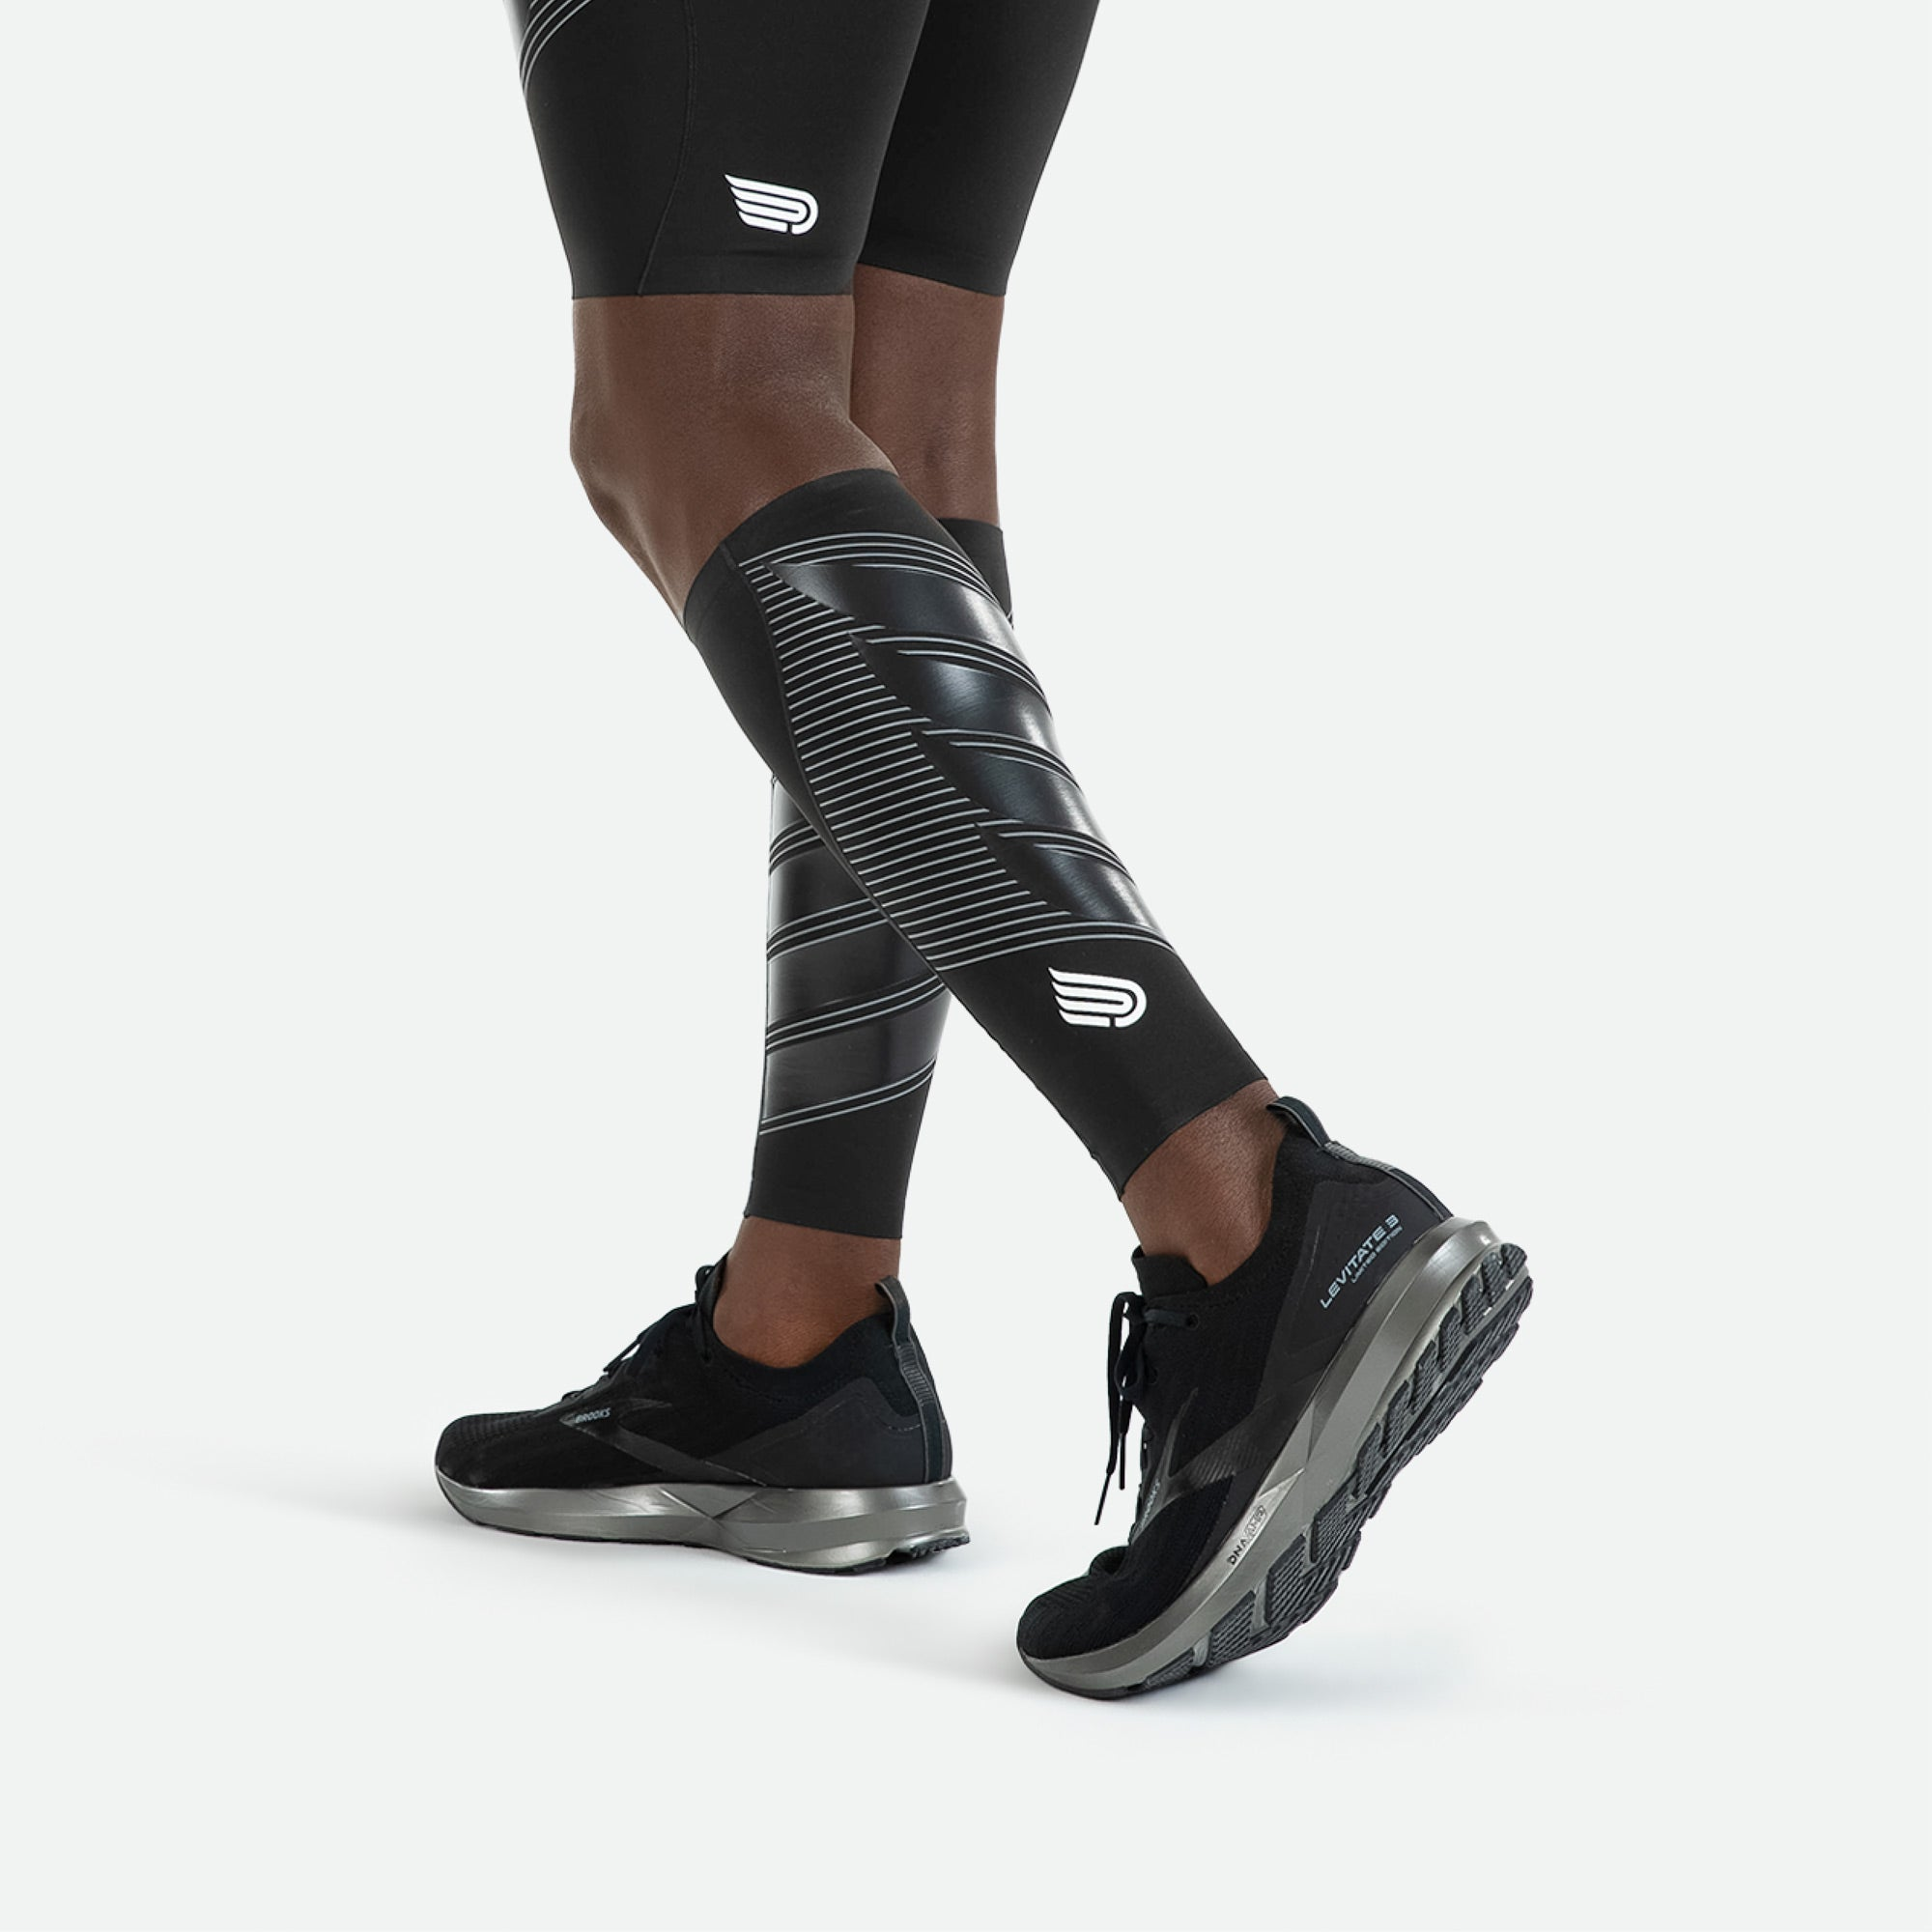 Pressio unisex power calf guards utilizing MAPP technology cocooning your calves for extra stabilization.